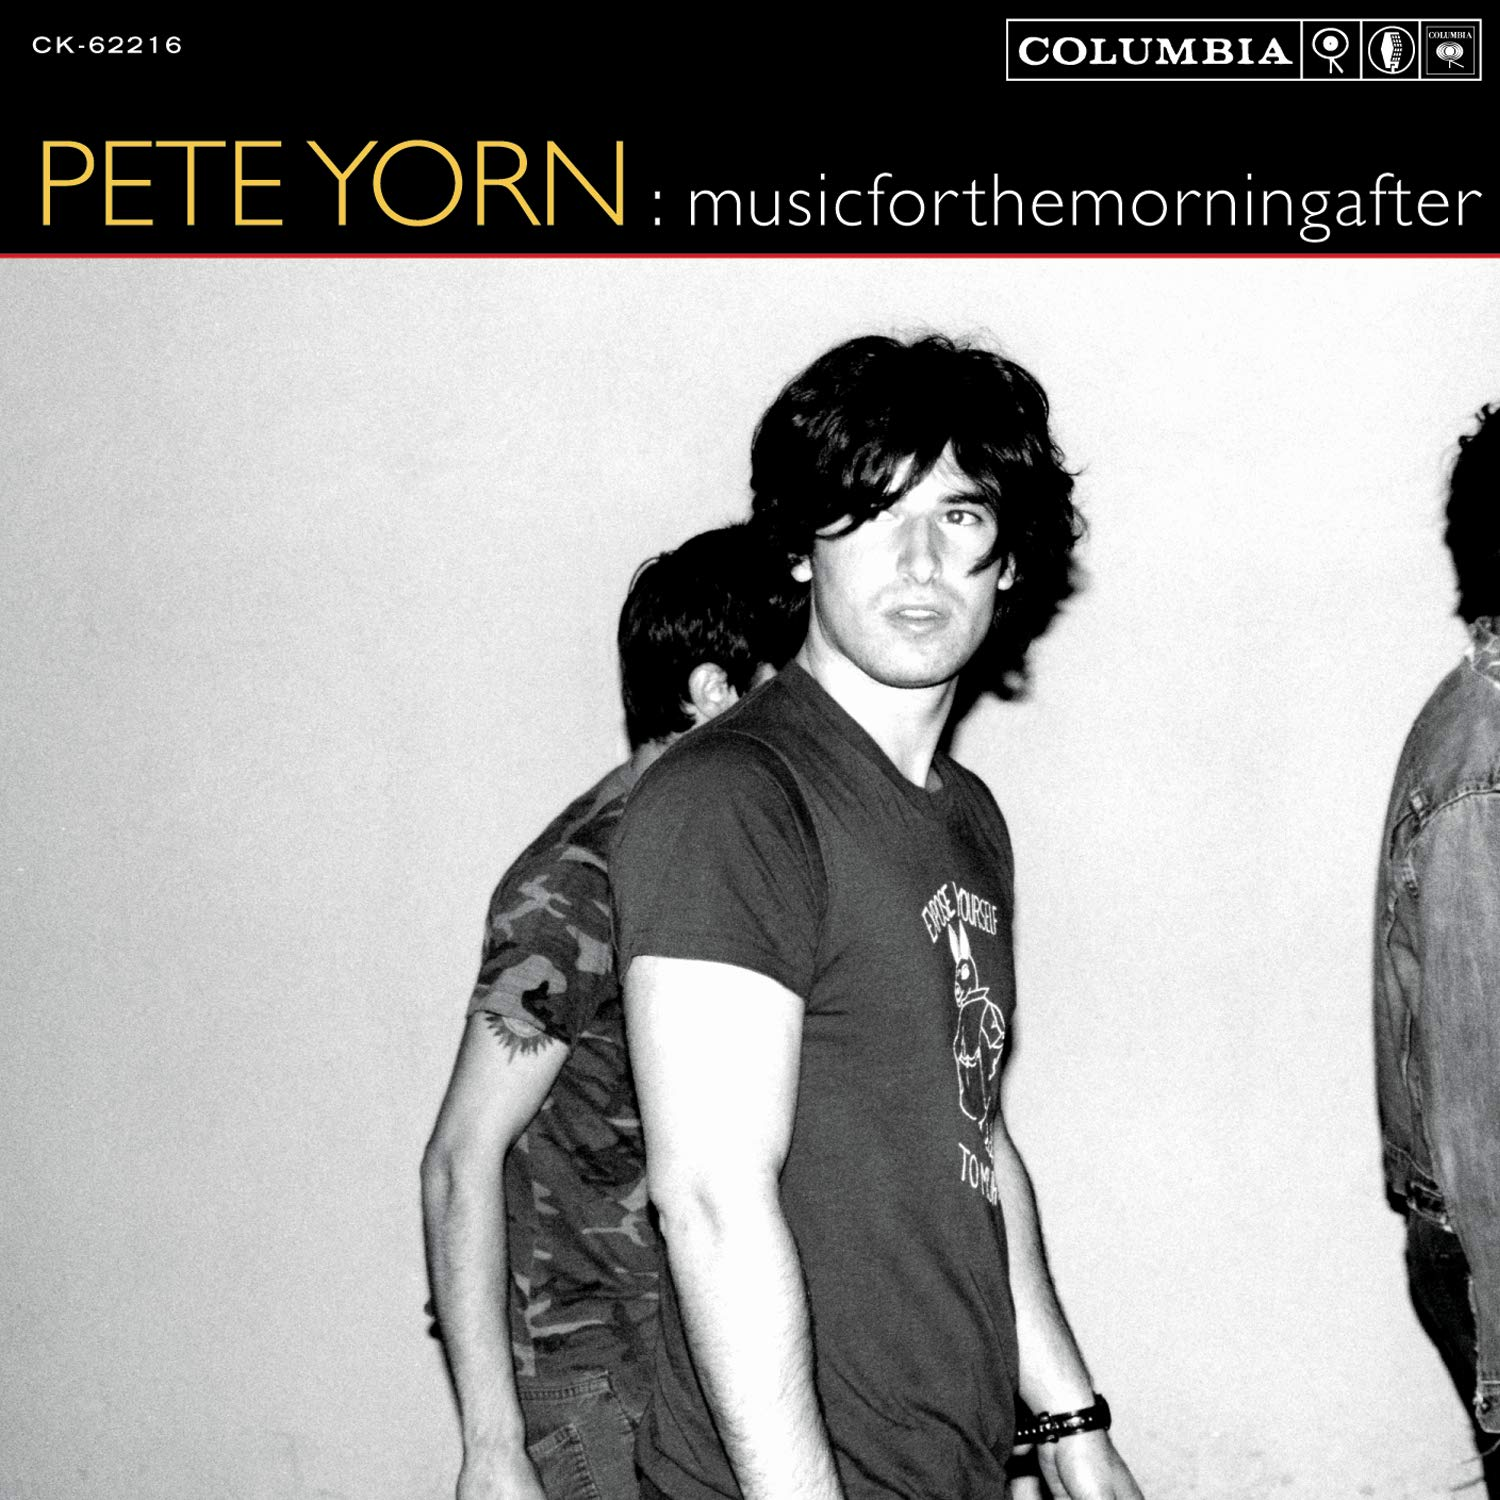 Pete Yorn musicforthemorningafter